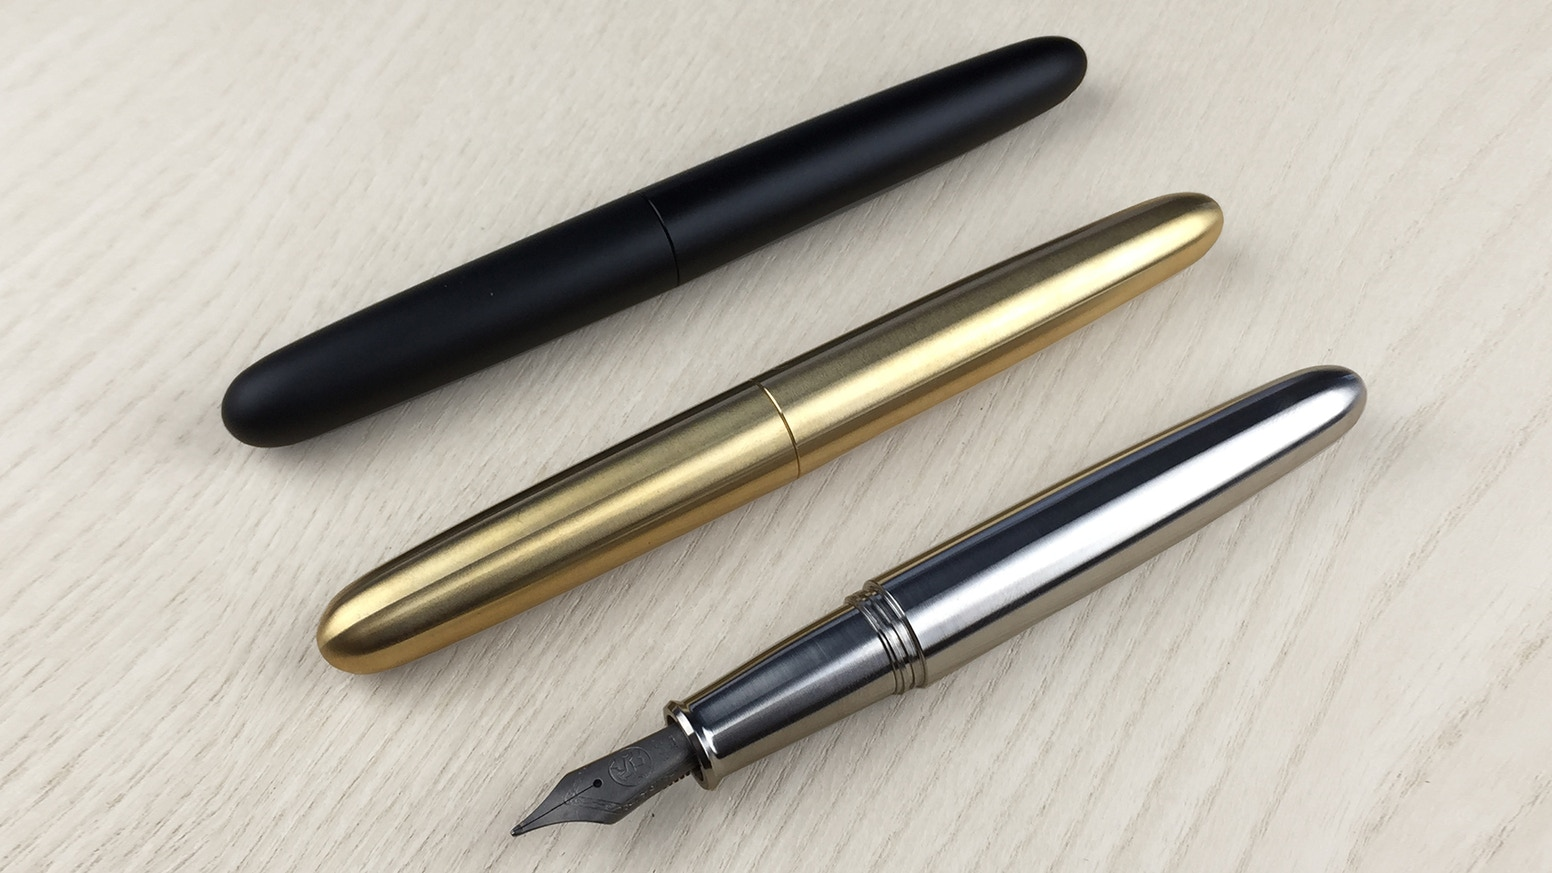 Sleek, minimal, and elegant fountain pen in solid titanium, brass, and black aluminum. Designed to be enjoyed for generations.